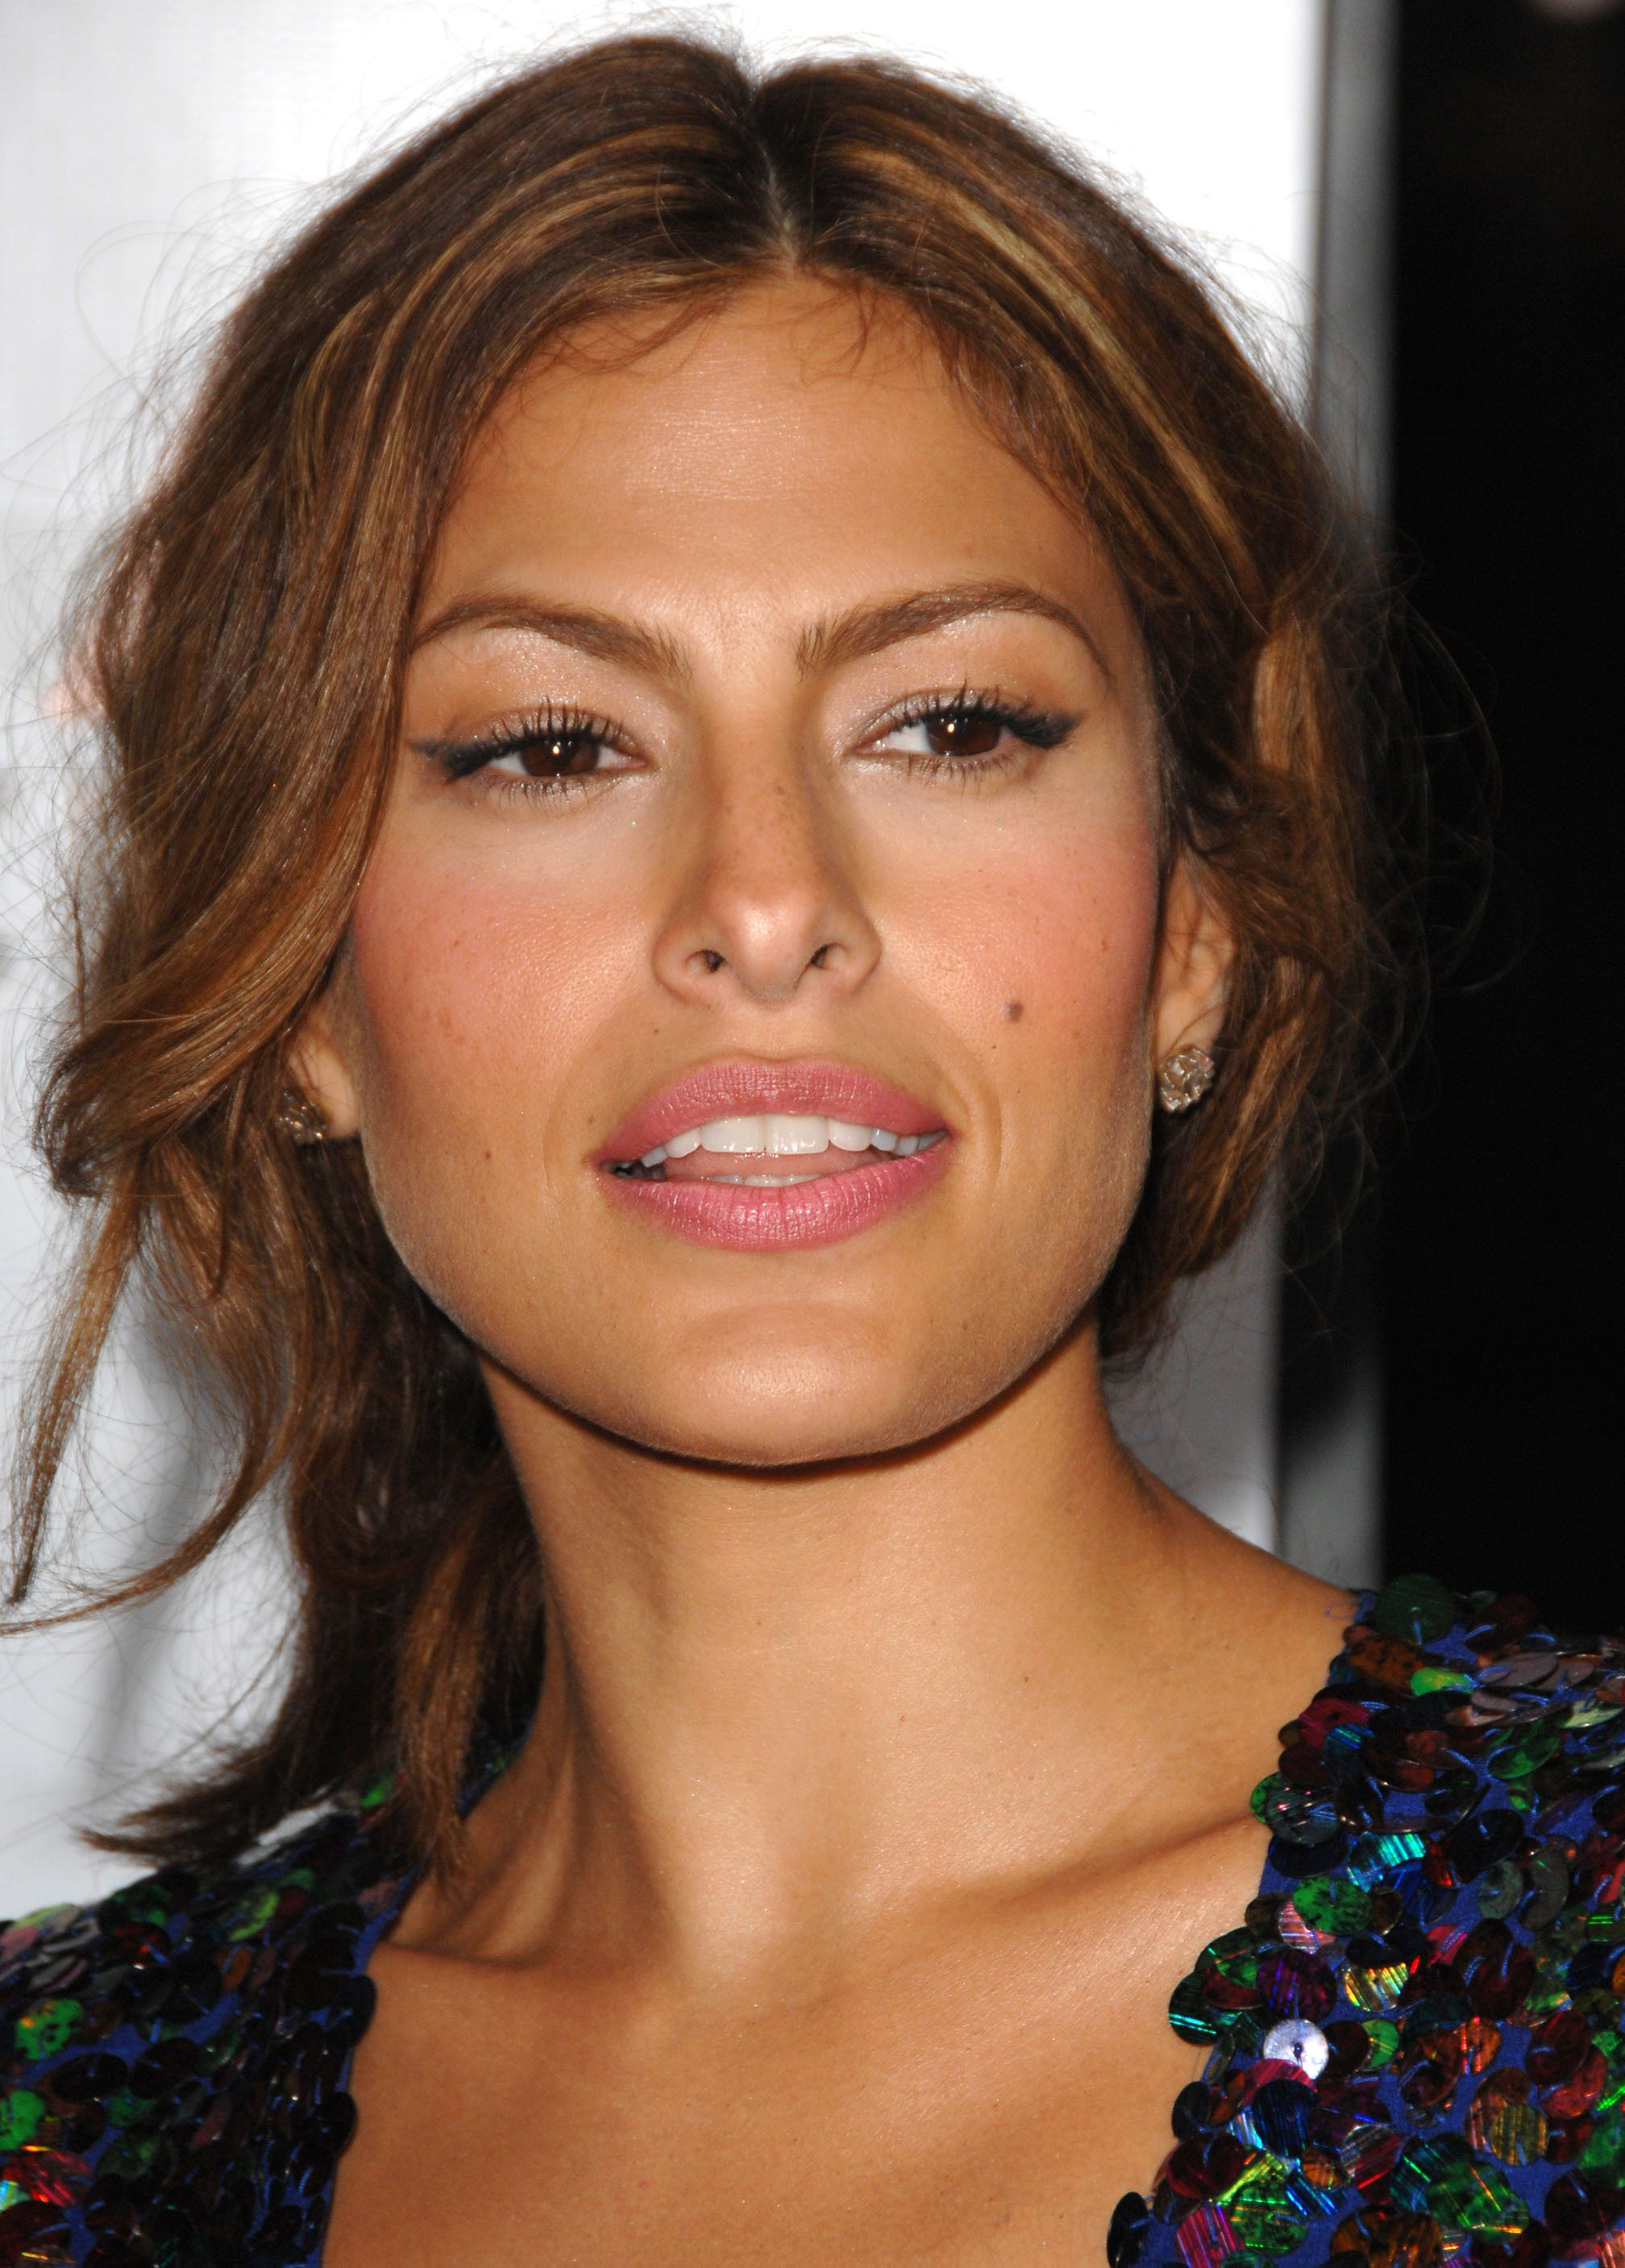 Eva mendes images uncensored agree, very